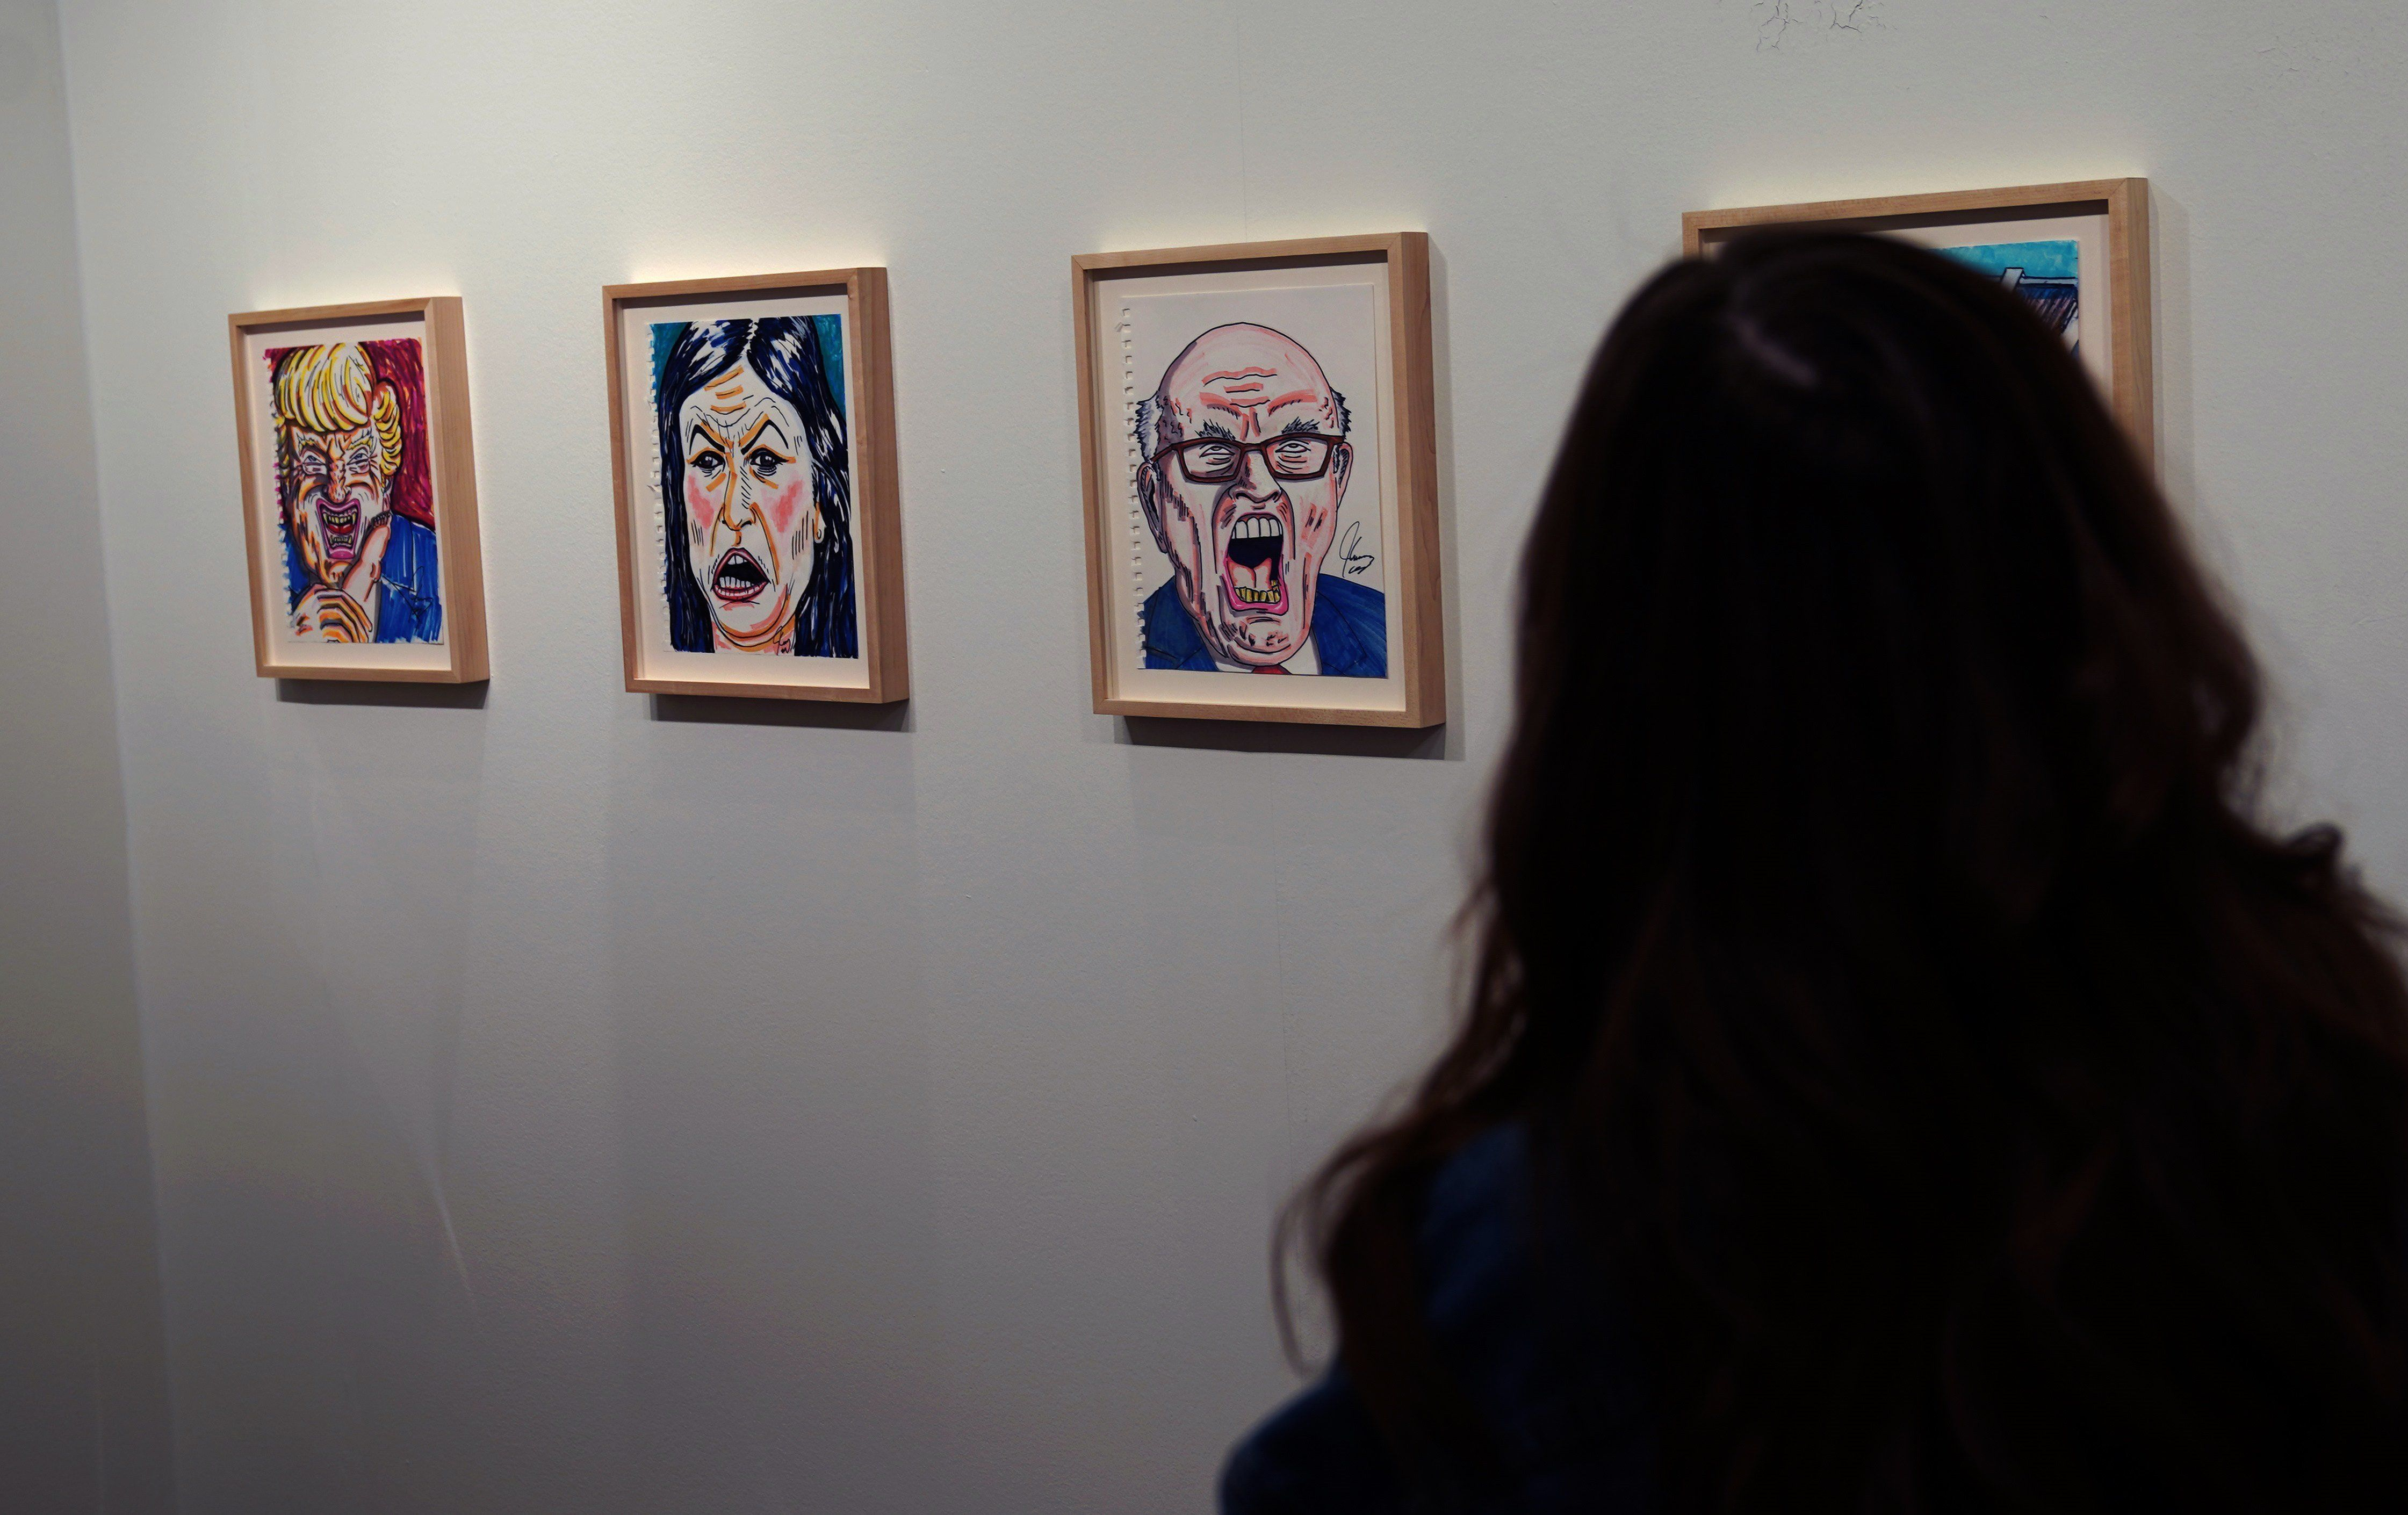 People view the artwork of actor and political cartoonist Jim Carrey during the Outsider Art Fair January 17, 2019 at the Metropolitan Pavilion in New York. - The star of movies and television has used his art to protest against the administration of US President Donald Trump. (Photo by TIMOTHY A. CLARY / AFP) / RESTRICTED TO EDITORIAL USE - MANDATORY MENTION OF THE ARTIST UPON PUBLICATION - TO ILLUSTRATE THE EVENT AS SPECIFIED IN THE CAPTION        (Photo credit should read TIMOTHY A. CLARY/AFP/Getty Images)